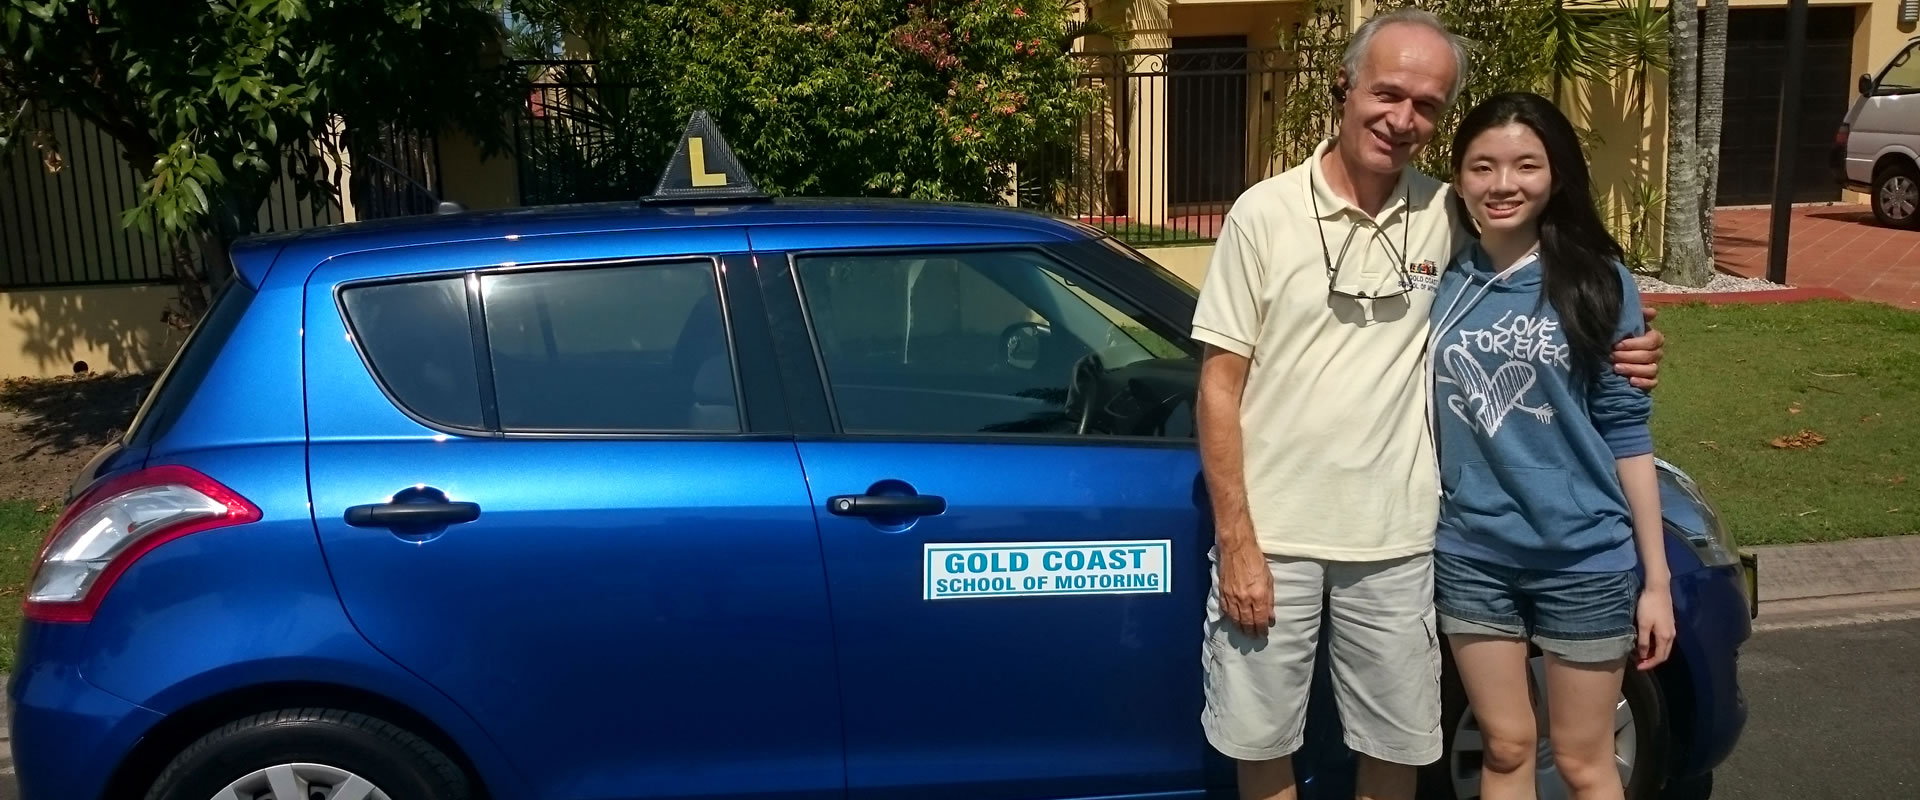 Gold Coast Driving School Lessons from Gold Coast School of Motoring